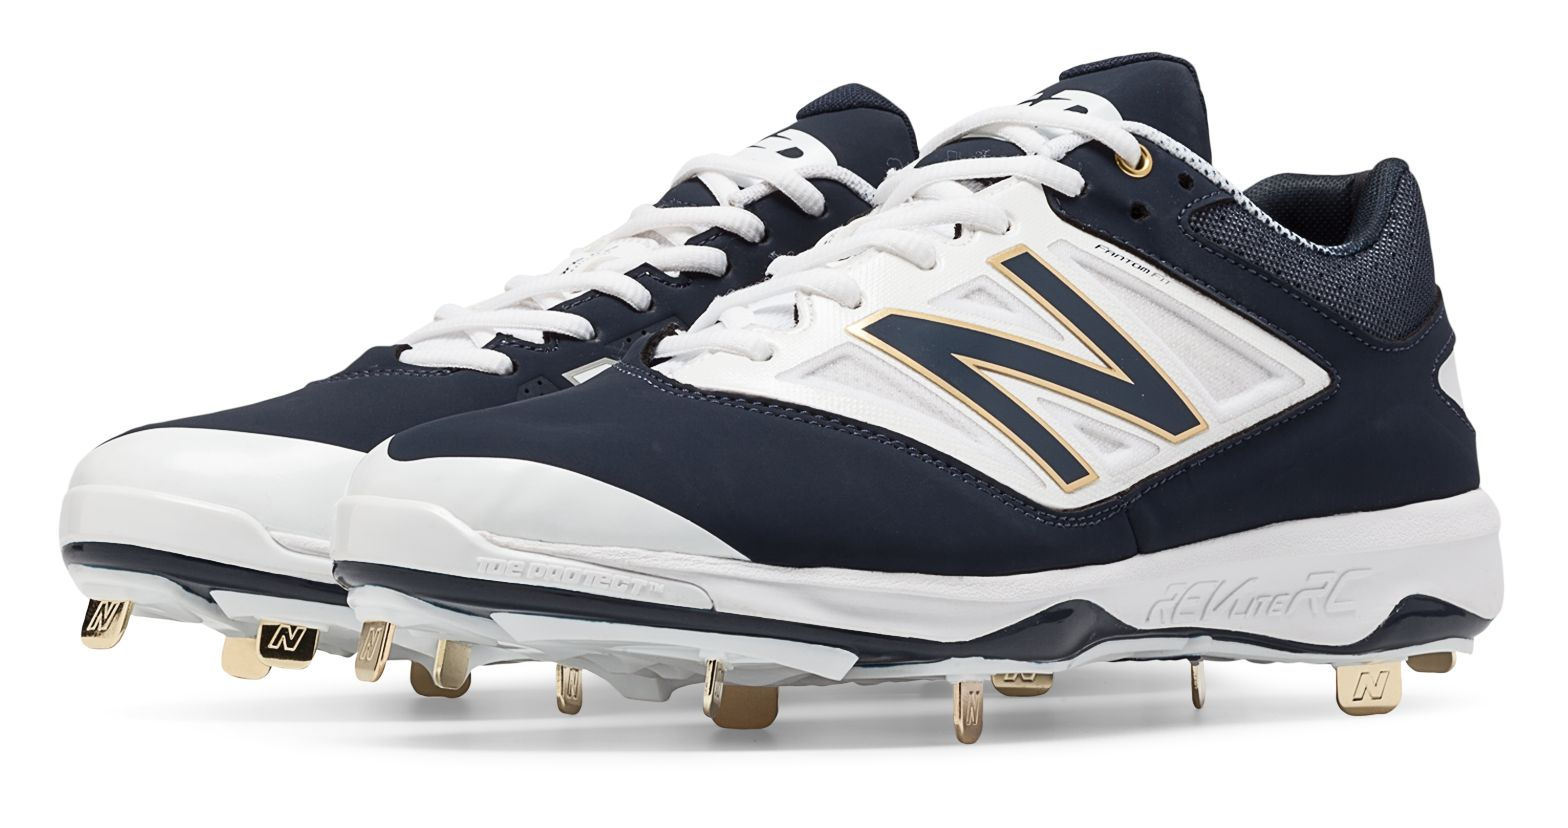 reputable site d3e3a 24855 ... Baseball Cleats, Big Boy s Size 4 W UPC 889116174306 product image for New  Balance Men s Low-Cut 4040v3 Metal Cleat Shoes Navy